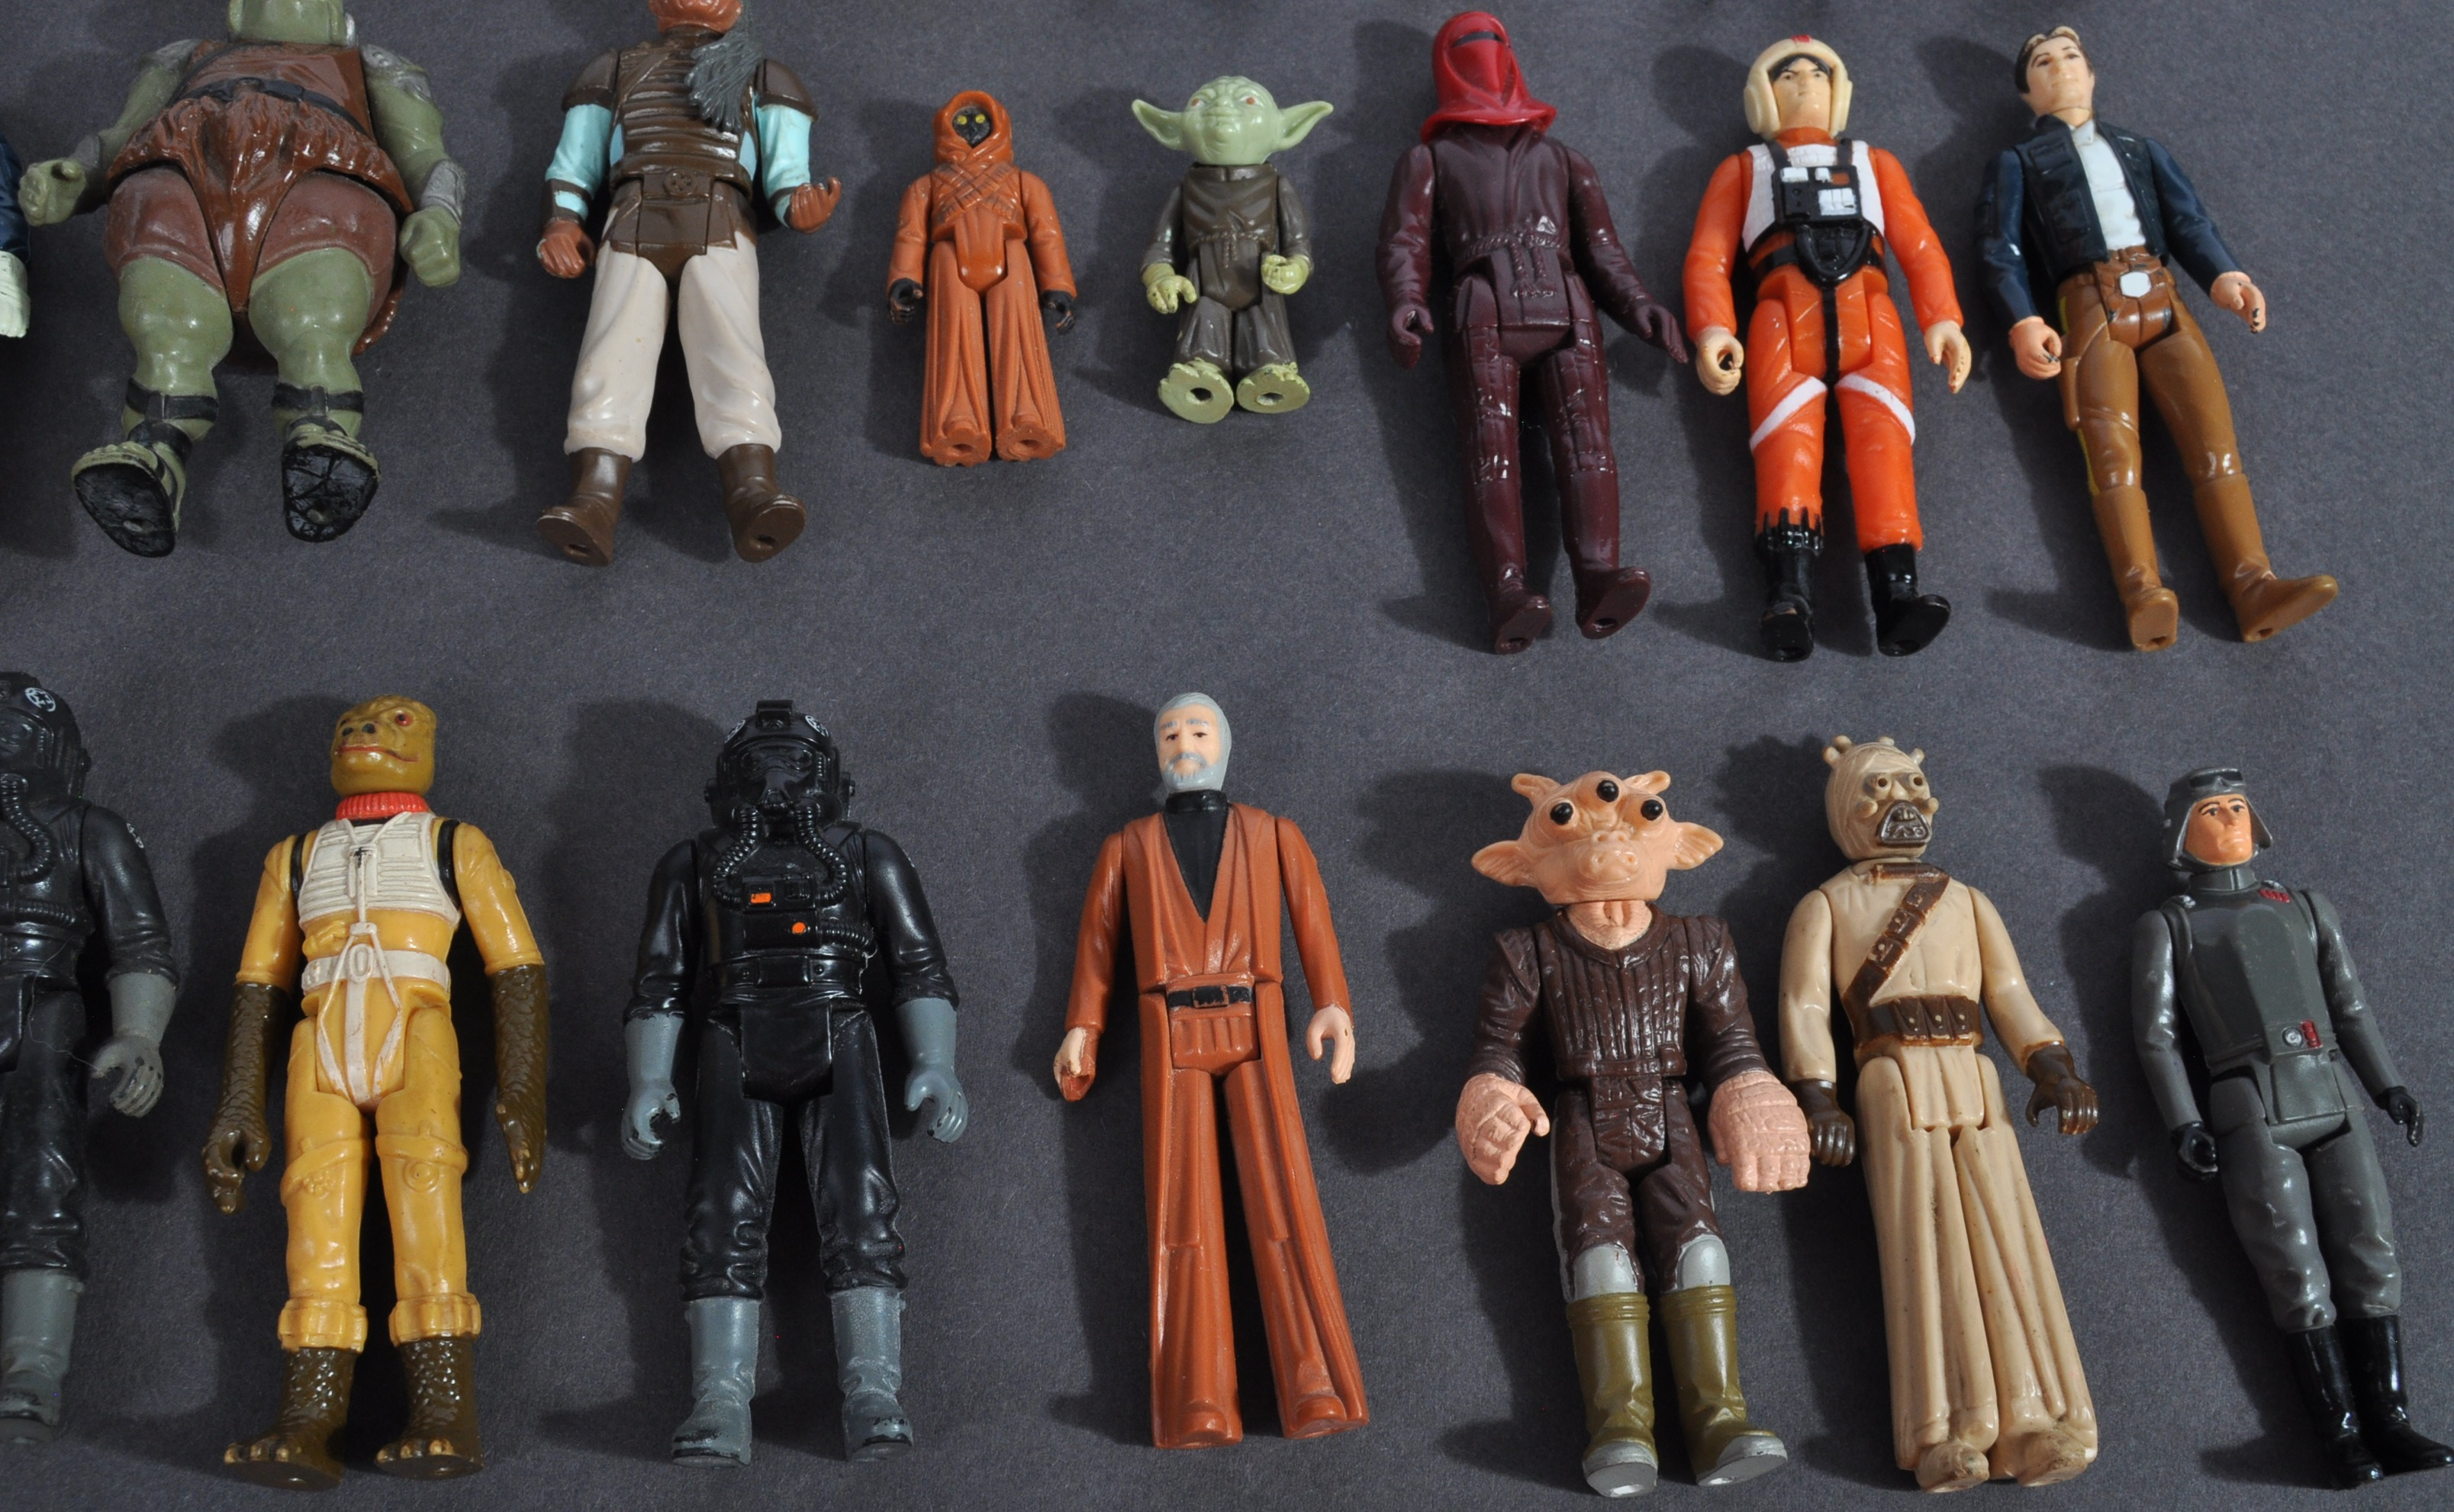 STAR WARS - COLLECTION OF VINTAGE KENNER / PALITOY ACTION FIGURES - Image 6 of 7